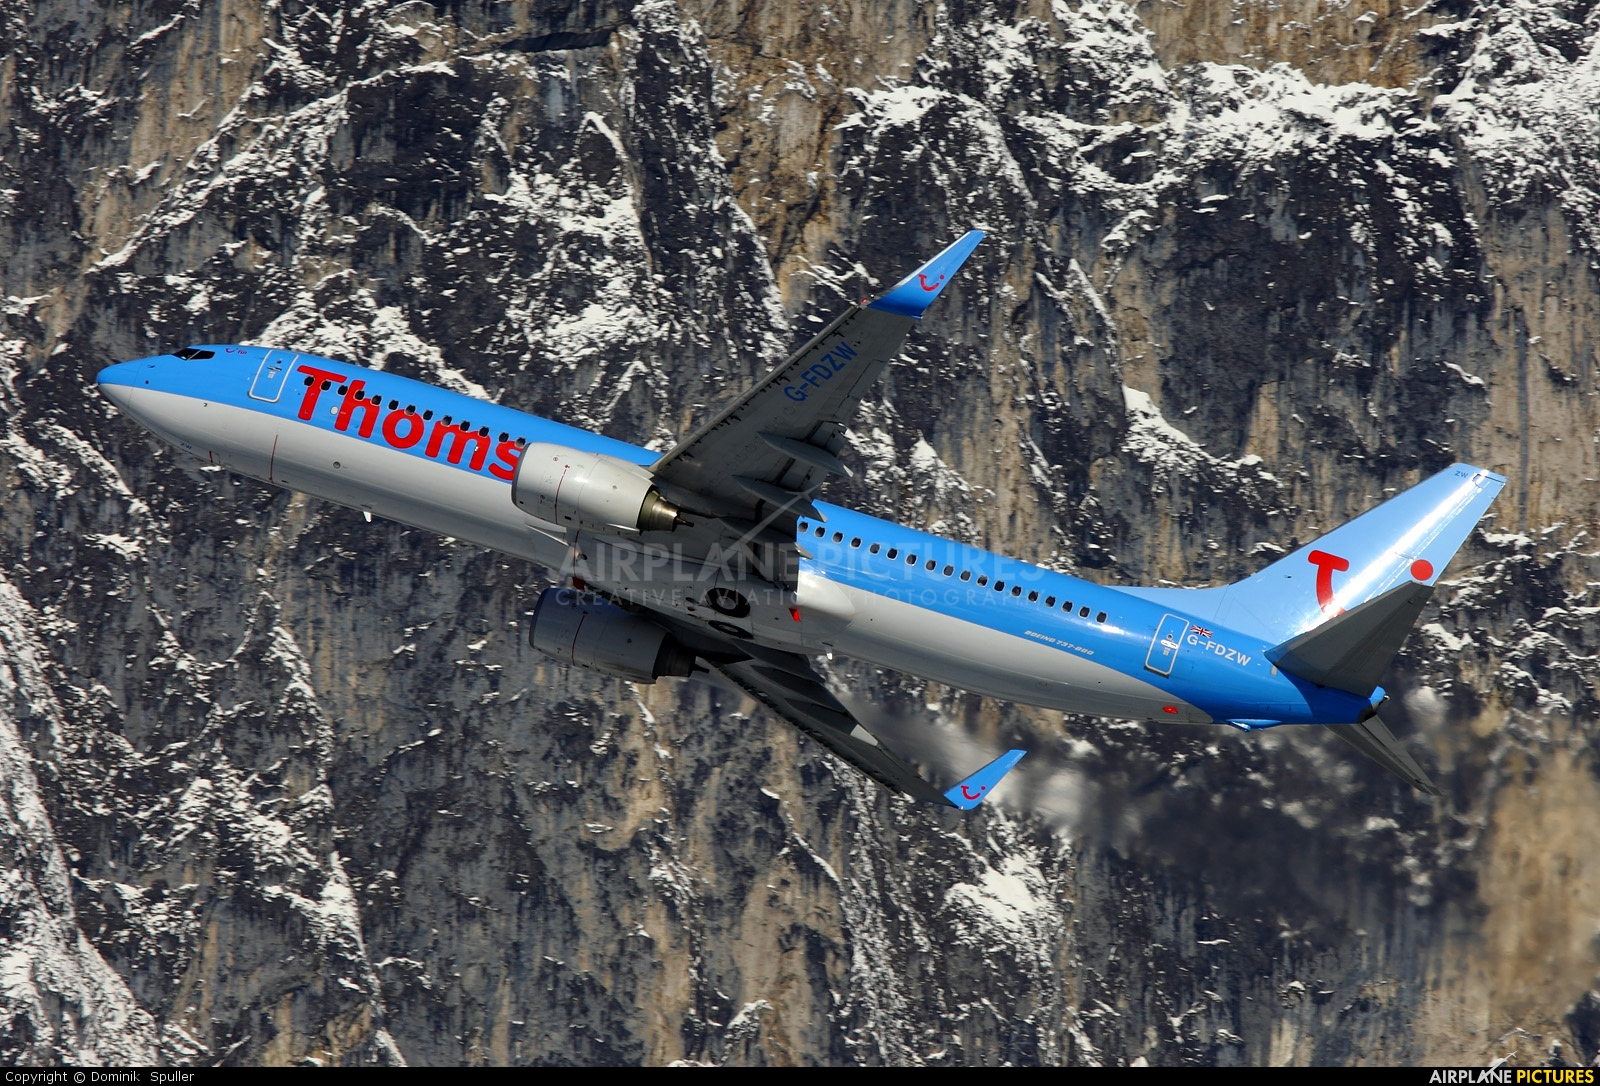 Thomson/Thomsonfly G-FDZW aircraft at Innsbruck